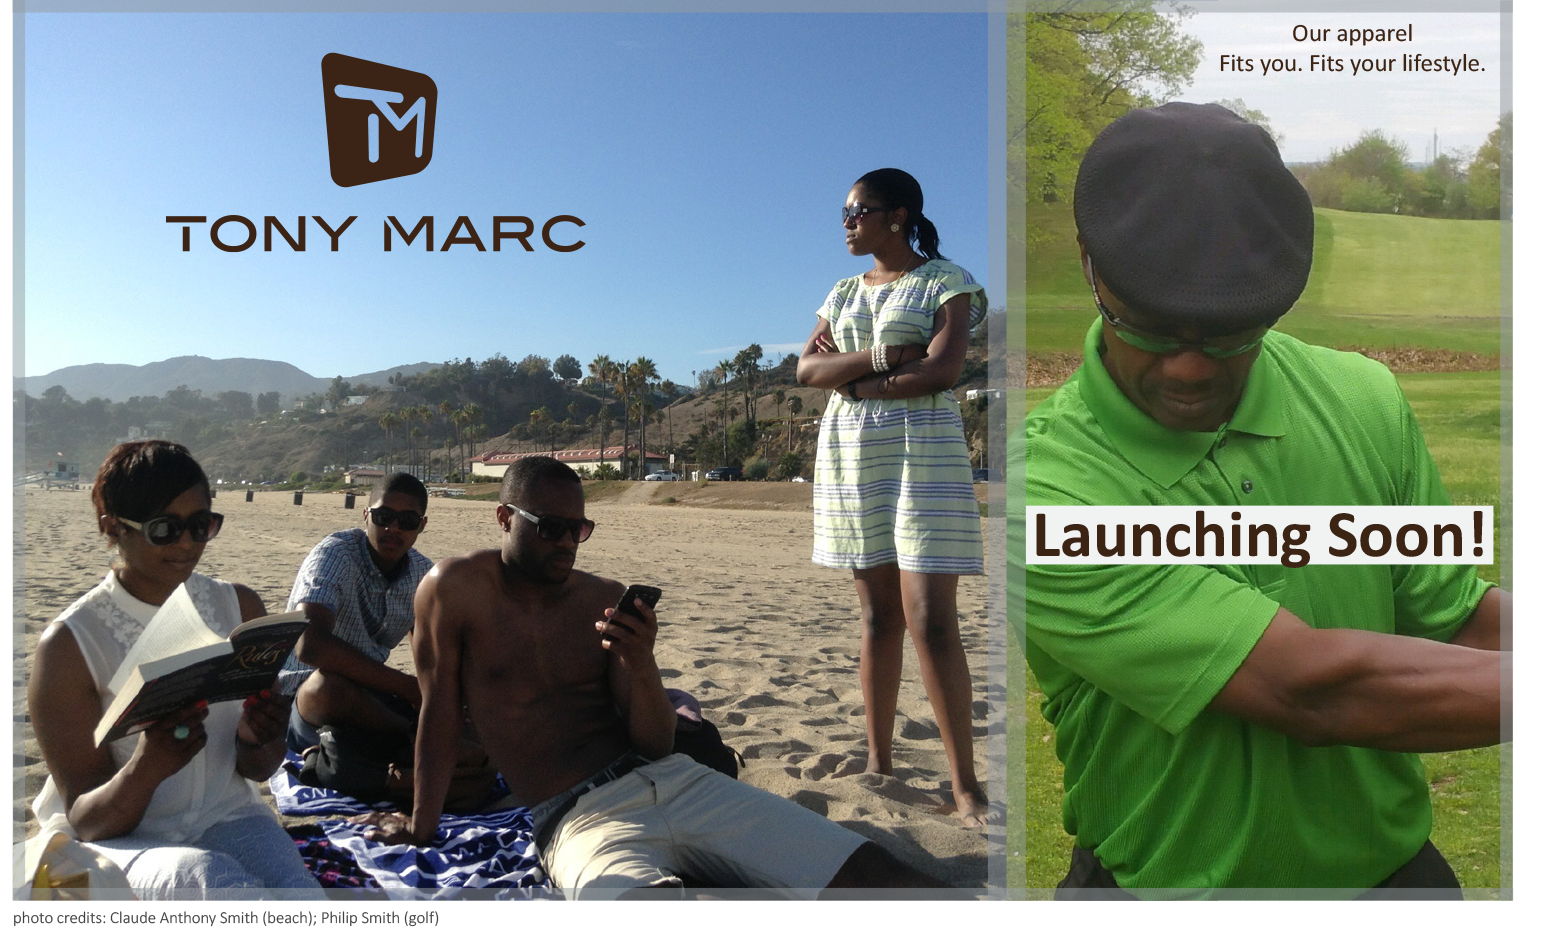 TM-Launching-Soon-Ad